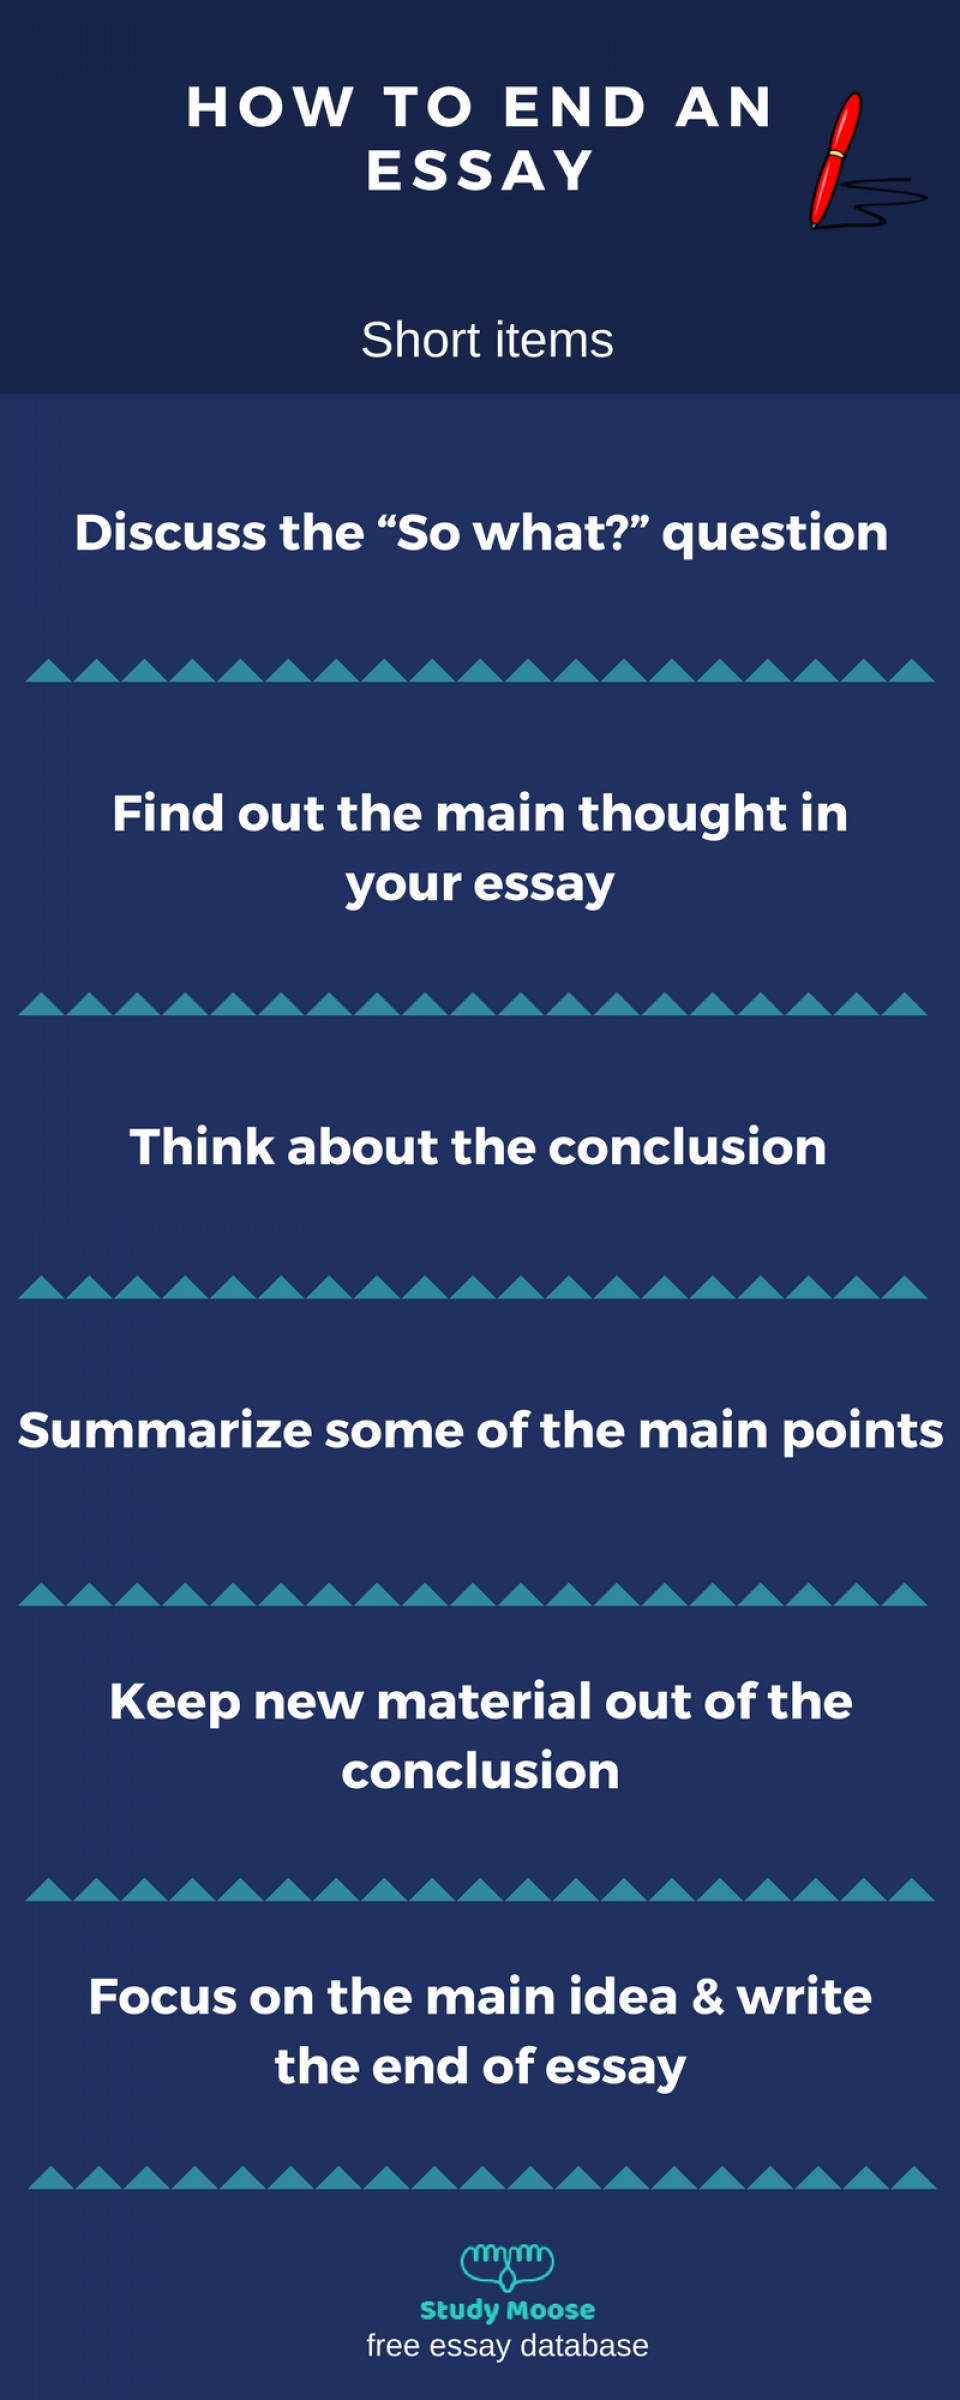 003 Essay Example Good Ways To End An Outstanding What's The Best Way What Is A Argumentative College 960